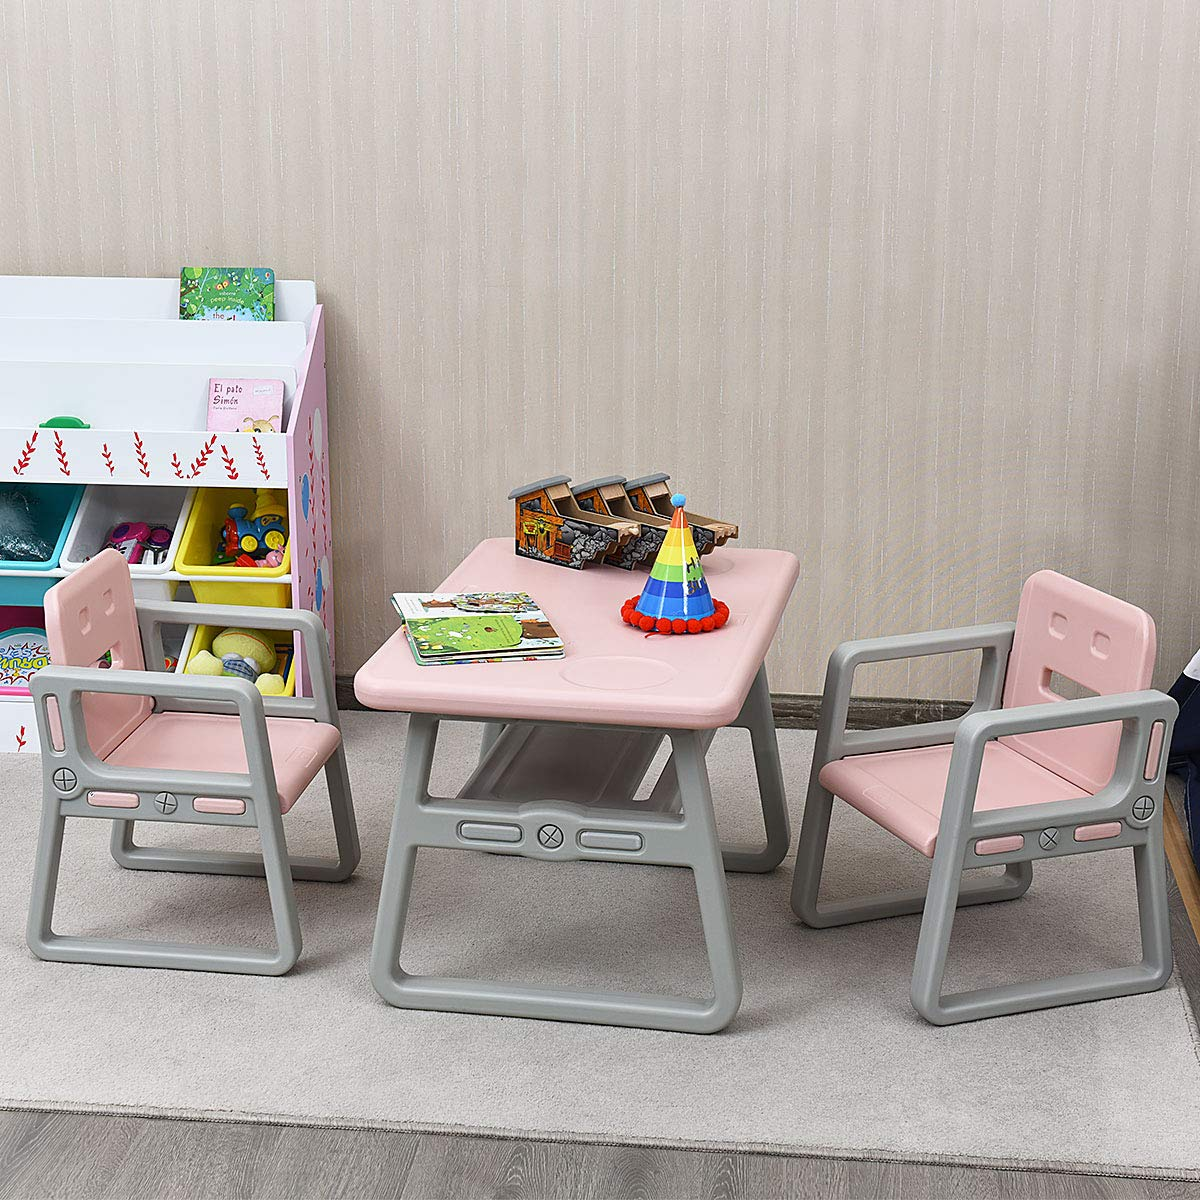 Costzon 3 Piece Kids Table and 2 Chairs Set, Learning Activity Play Table, Baby Dining Table, Children Desk Chair for 1-3 Years, Kids Furniture Set (Pink) by Costzon (Image #2)